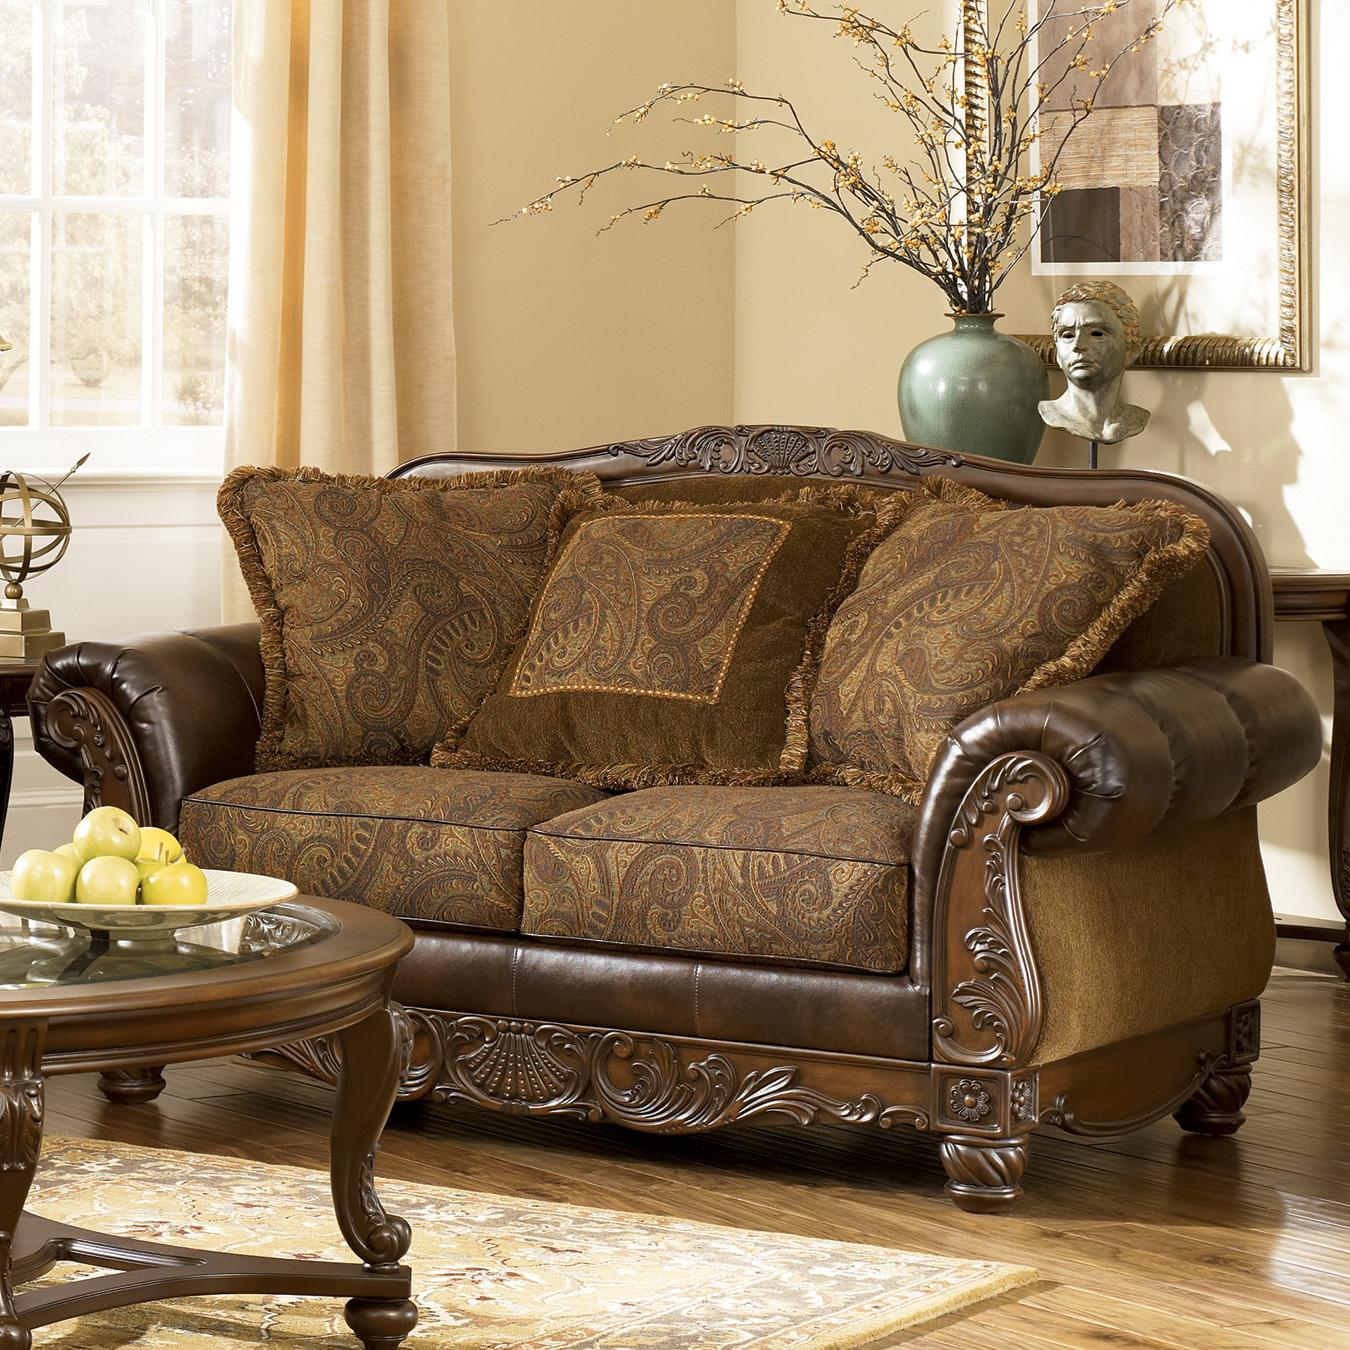 Signature Design by Ashley Fresco DuraBlend - Antique Loveseat - Item Number: 6310035